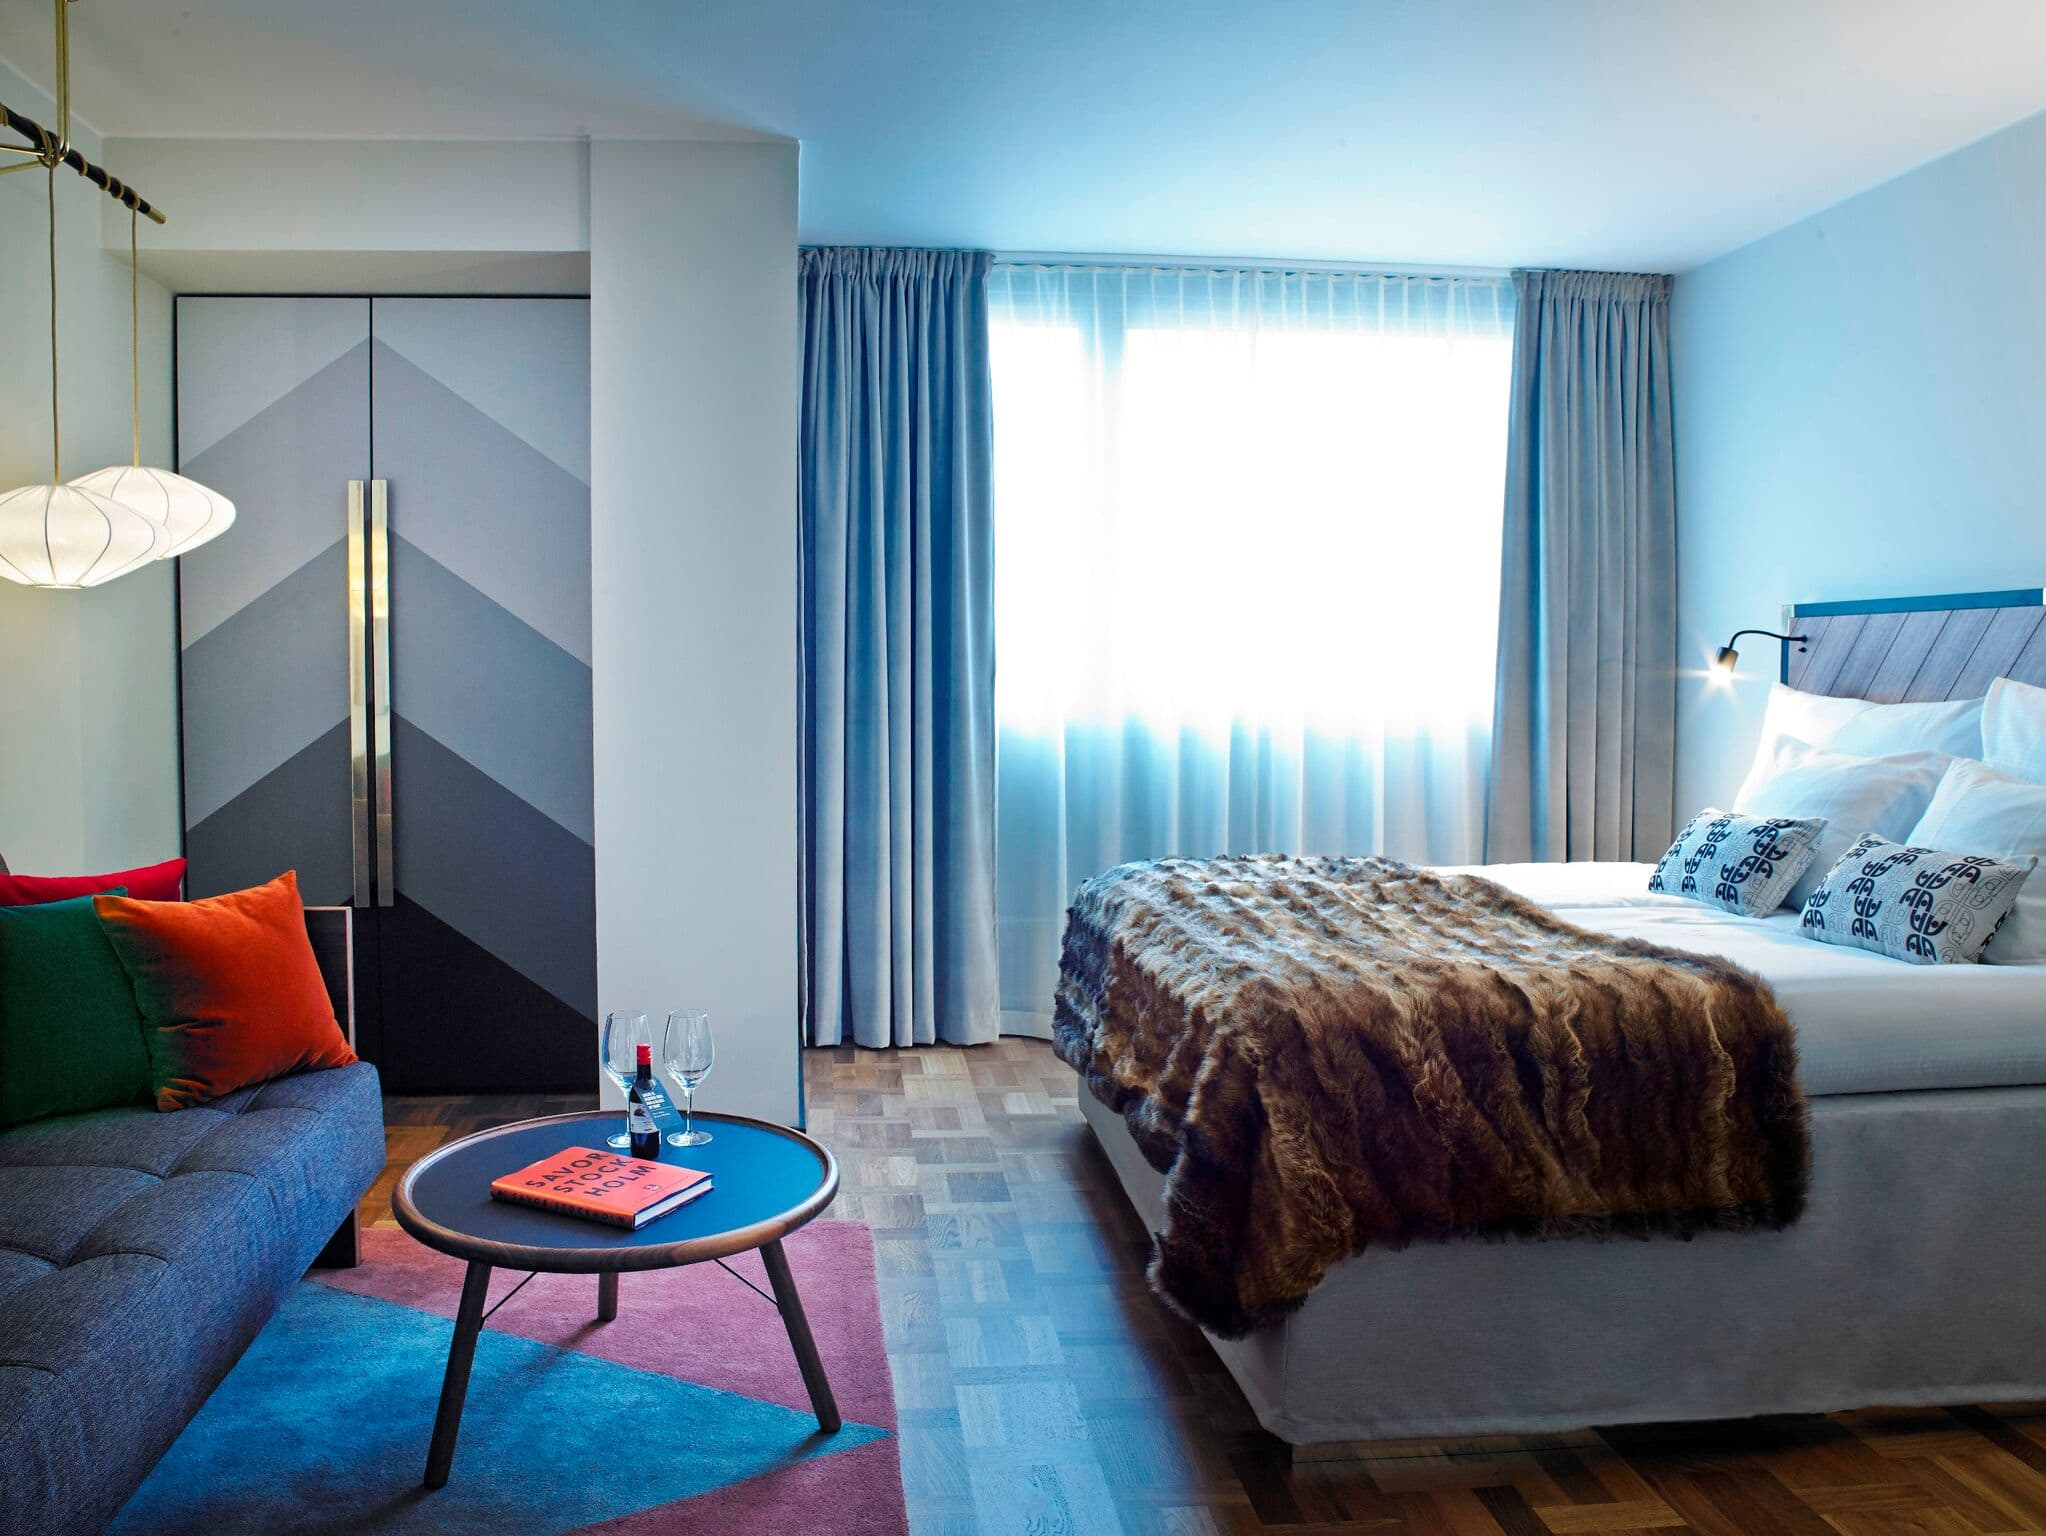 The best hotels in Kungsholmen